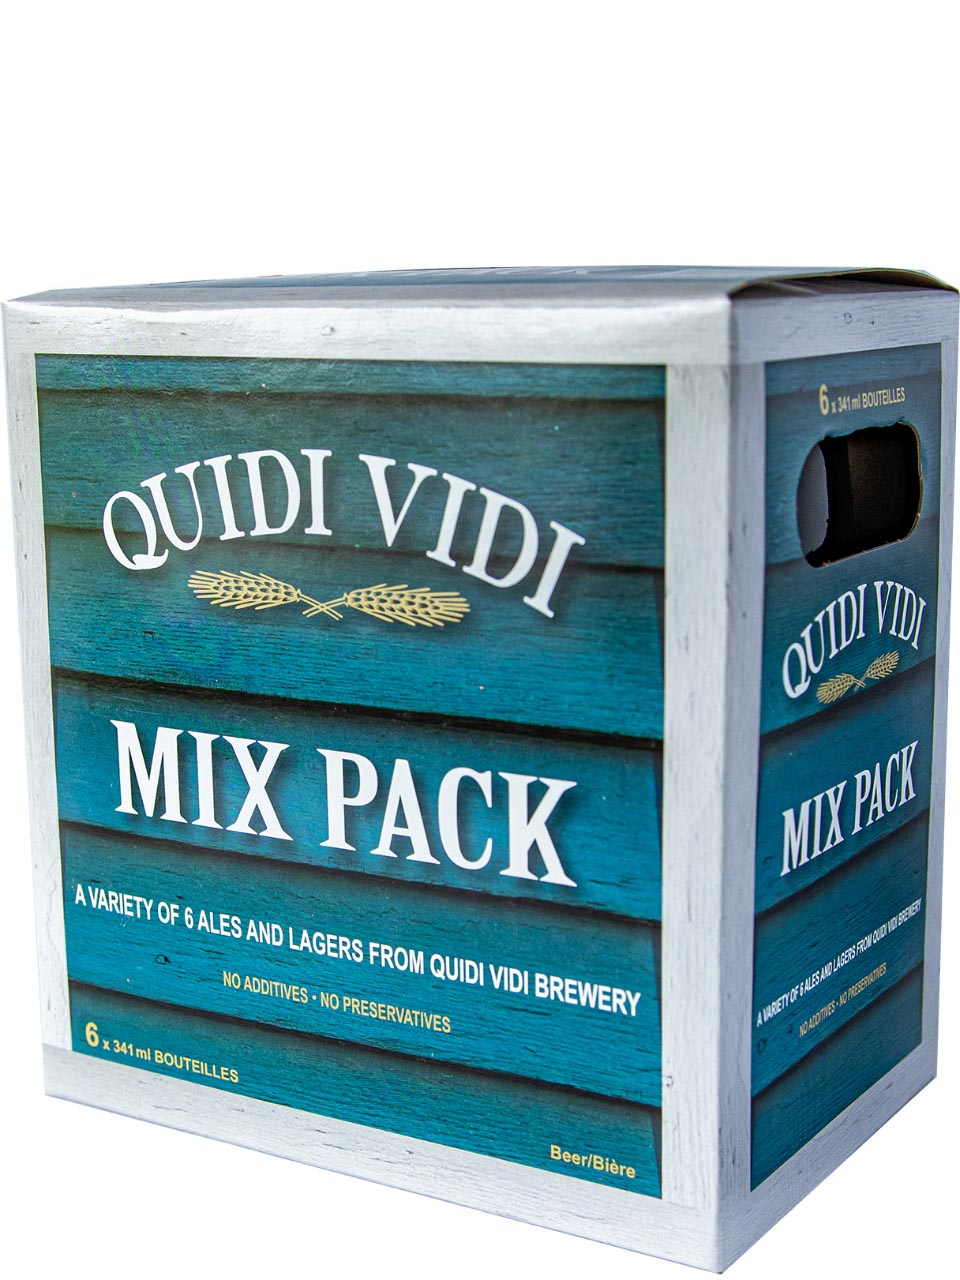 Quidi Vidi Mix Pack 6 Pack Bottles